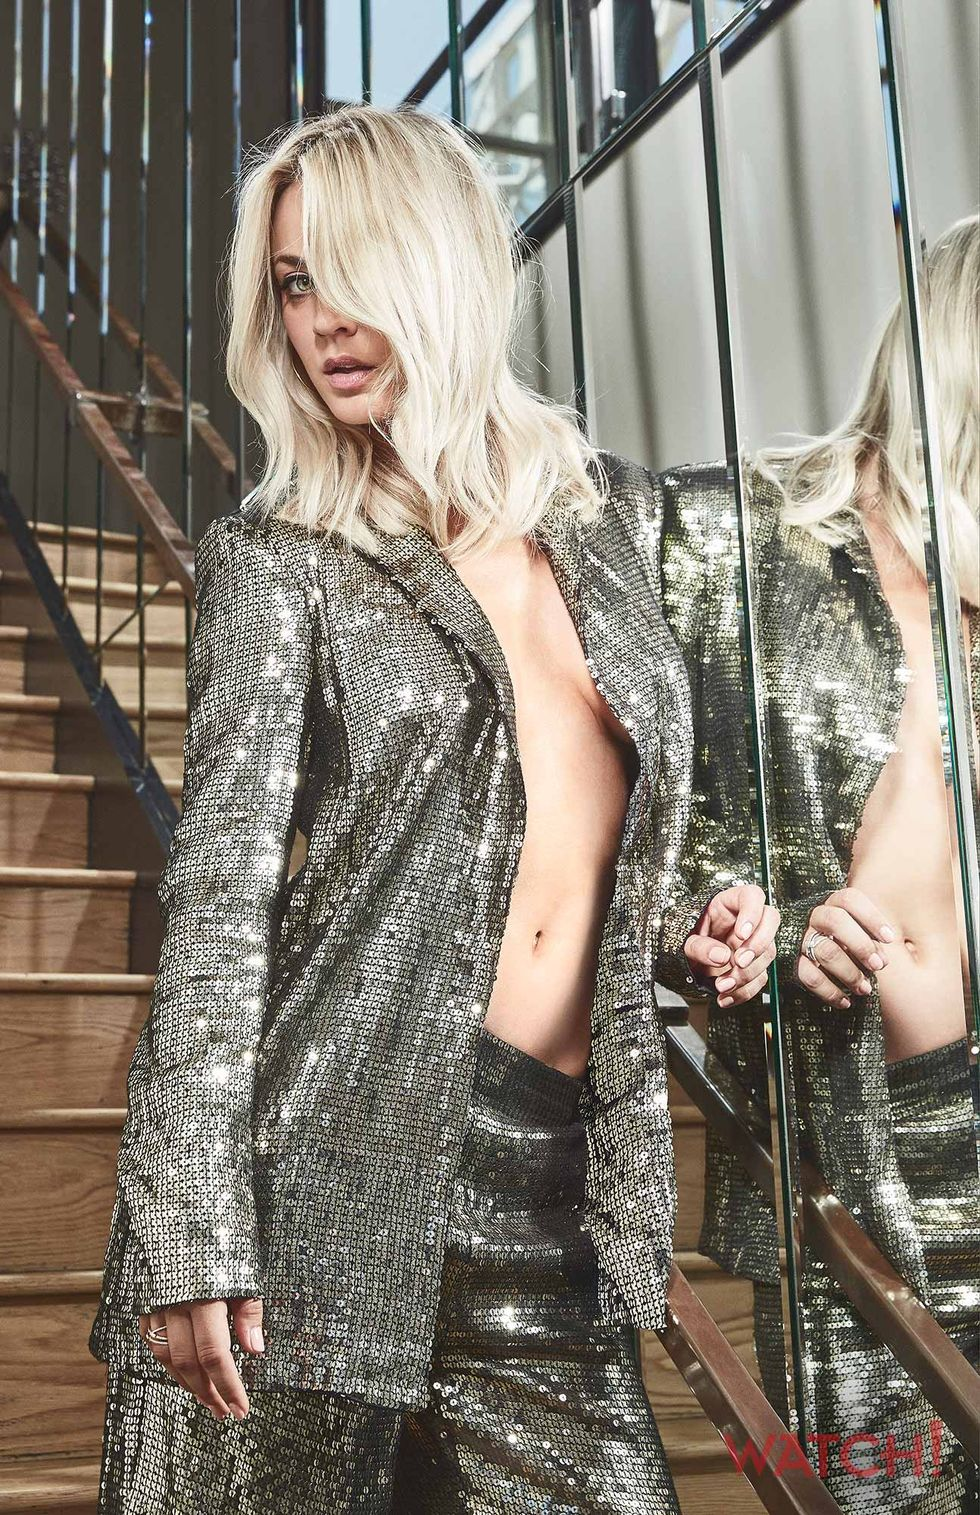 Kaley Cuoco in sparkly silver outfit